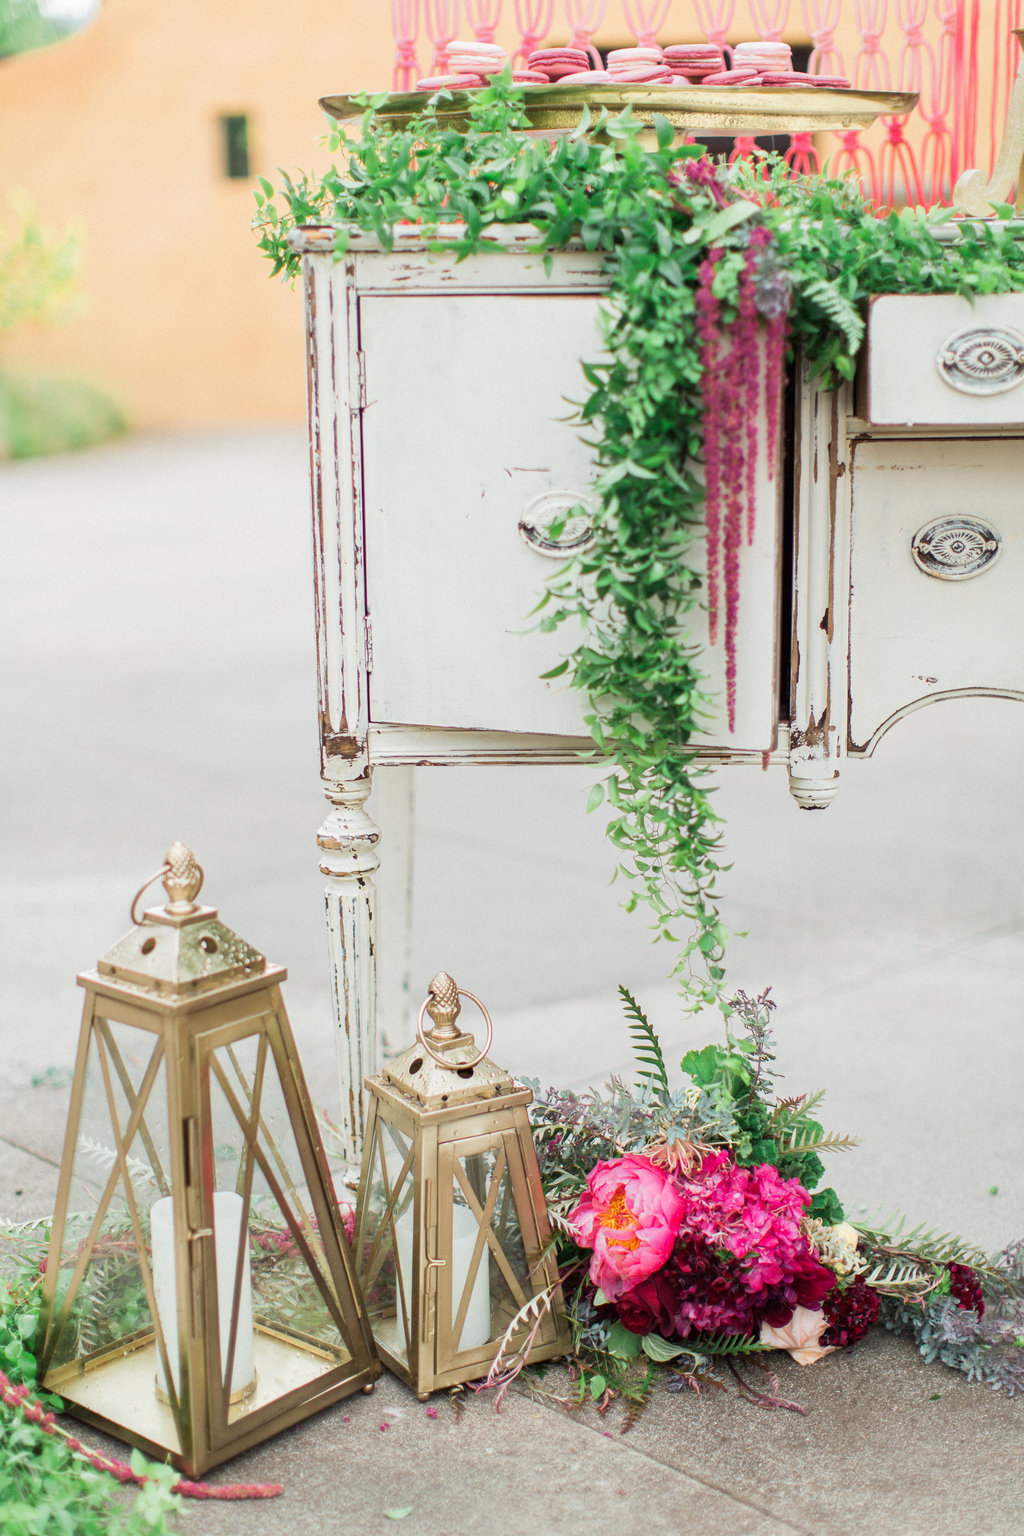 Los-Robles-Gardens-Styled-Shoot-191.jpg